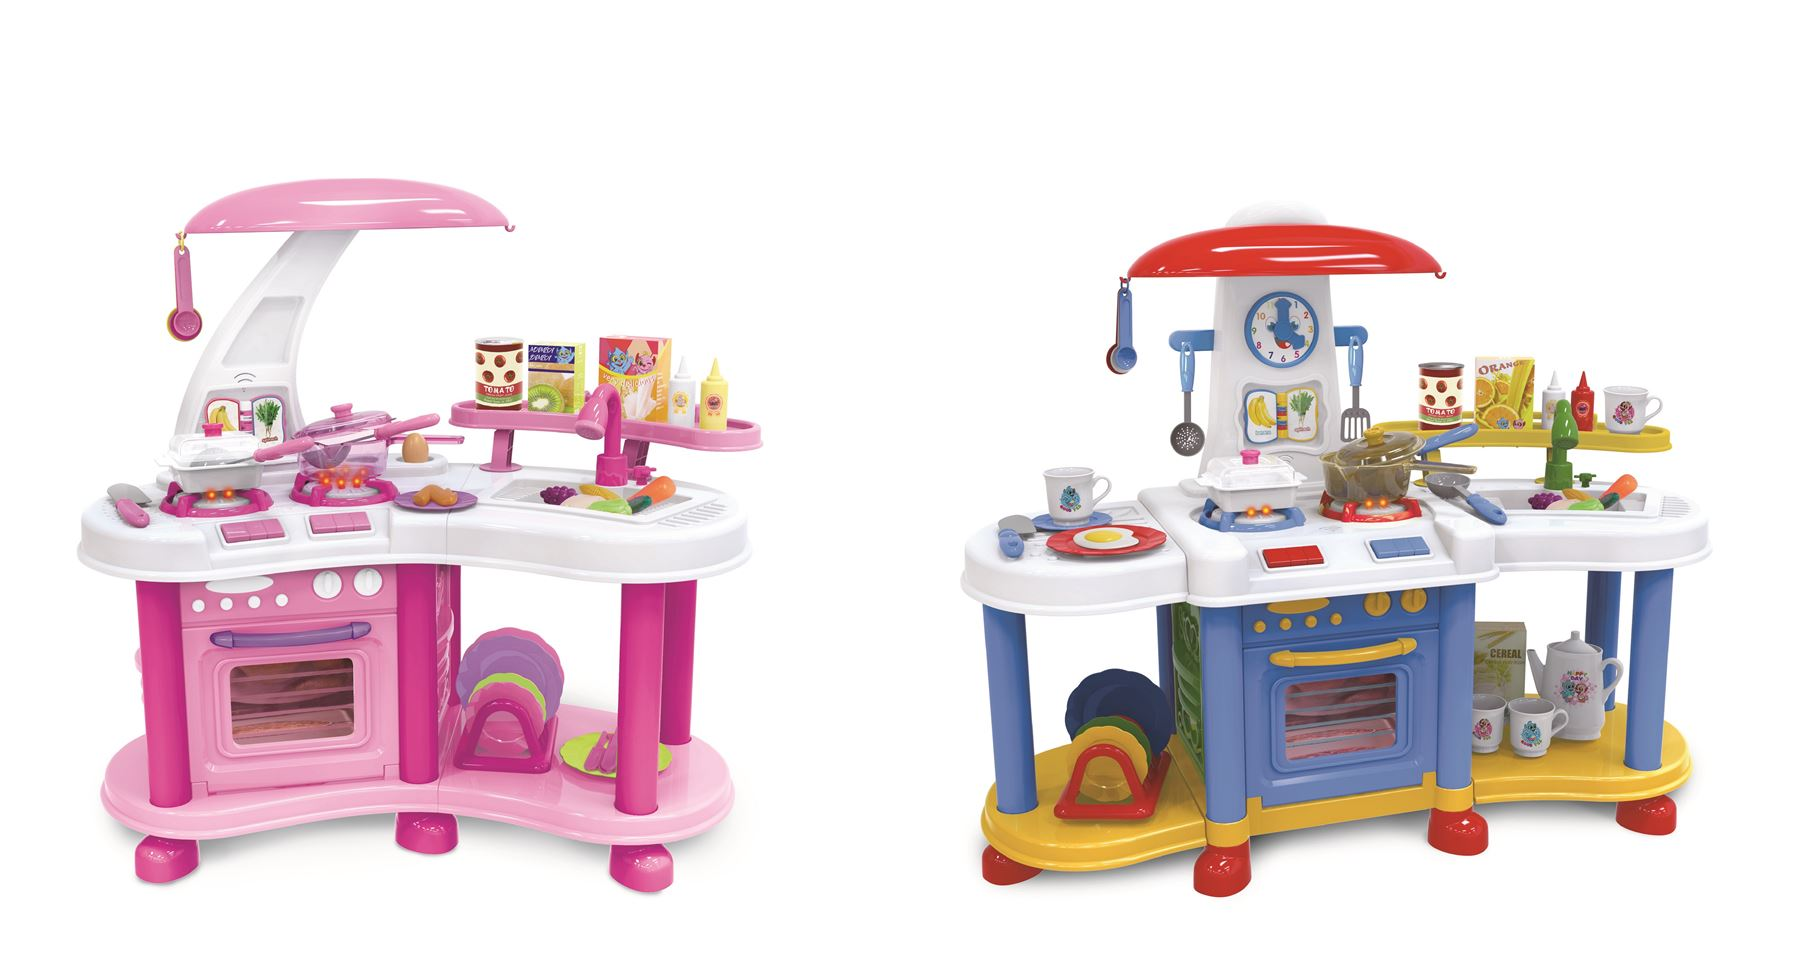 Vinsani Pretend Play Little Kitchen Food Cooking Gas Oven